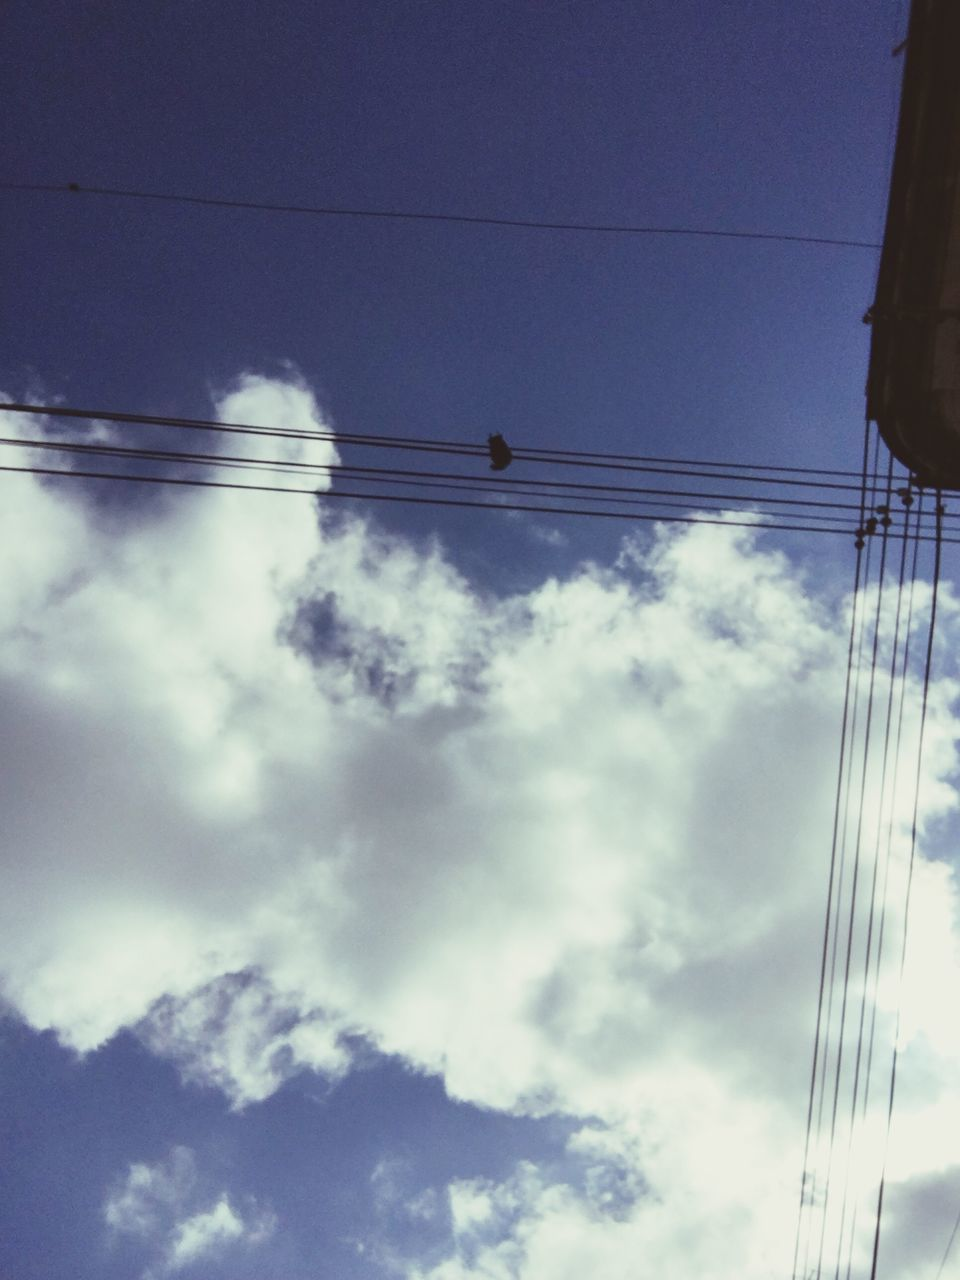 power line, low angle view, electricity, cable, power supply, sky, electricity pylon, connection, cloud - sky, blue, technology, power cable, fuel and power generation, cloud, cloudy, outdoors, no people, nature, silhouette, day